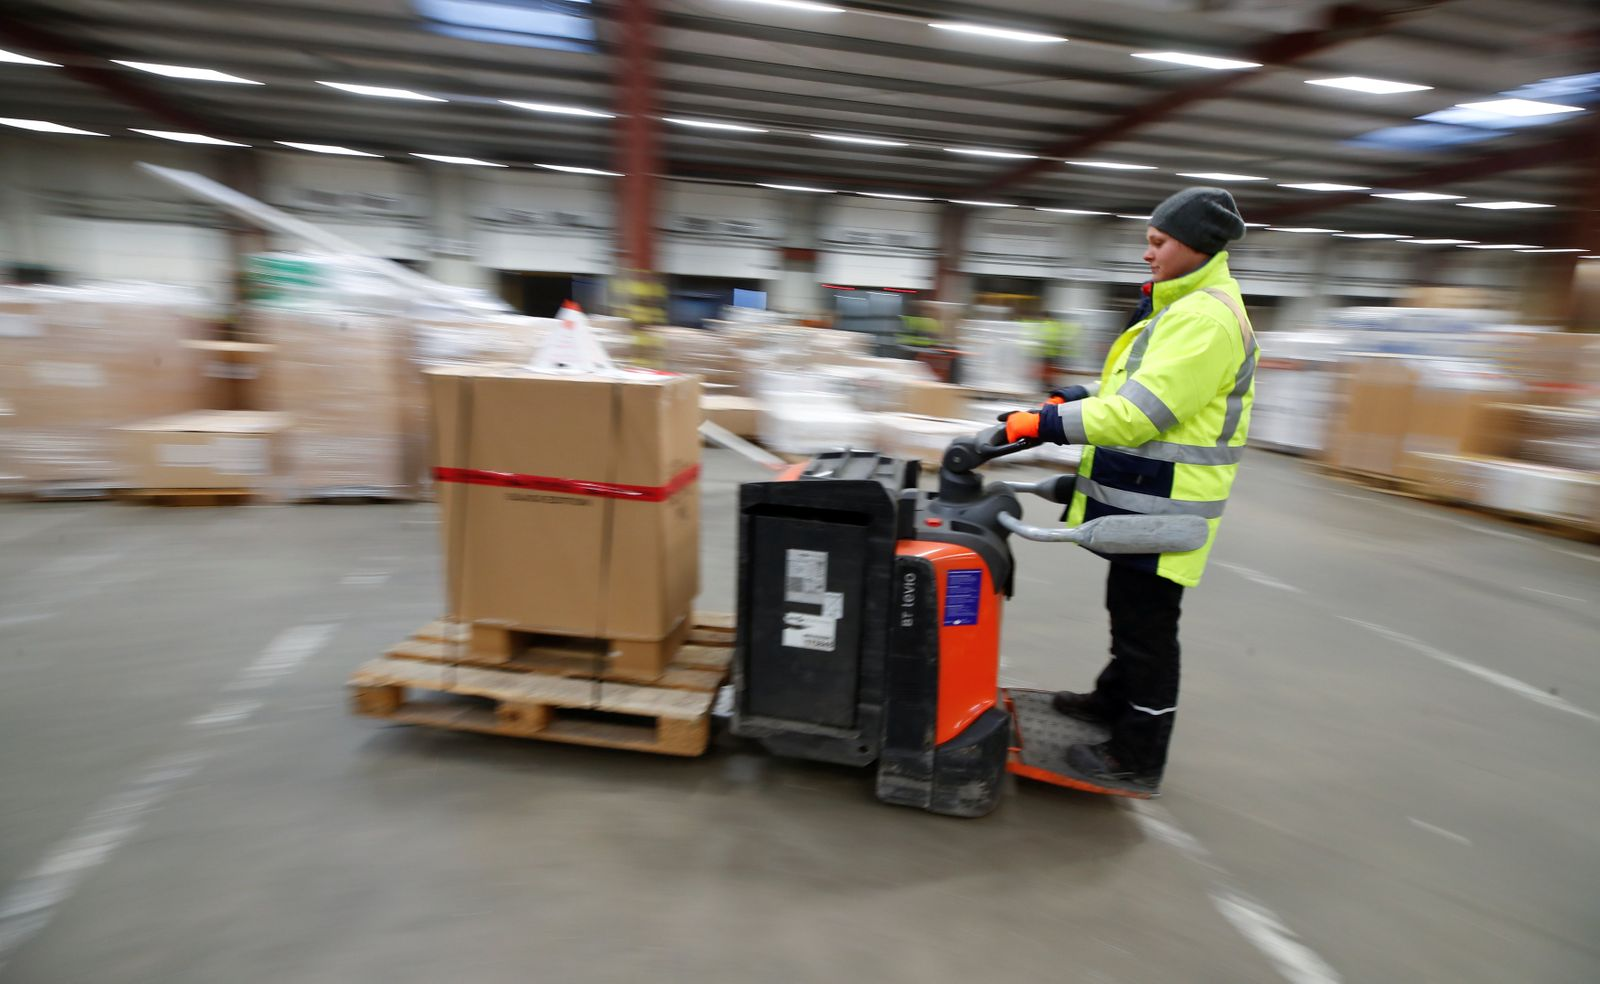 A female employee of German postal and logistics group Deutsche Post DHL moves freight with a pallet transporter at a DHL freight logistics centre in Sehlem